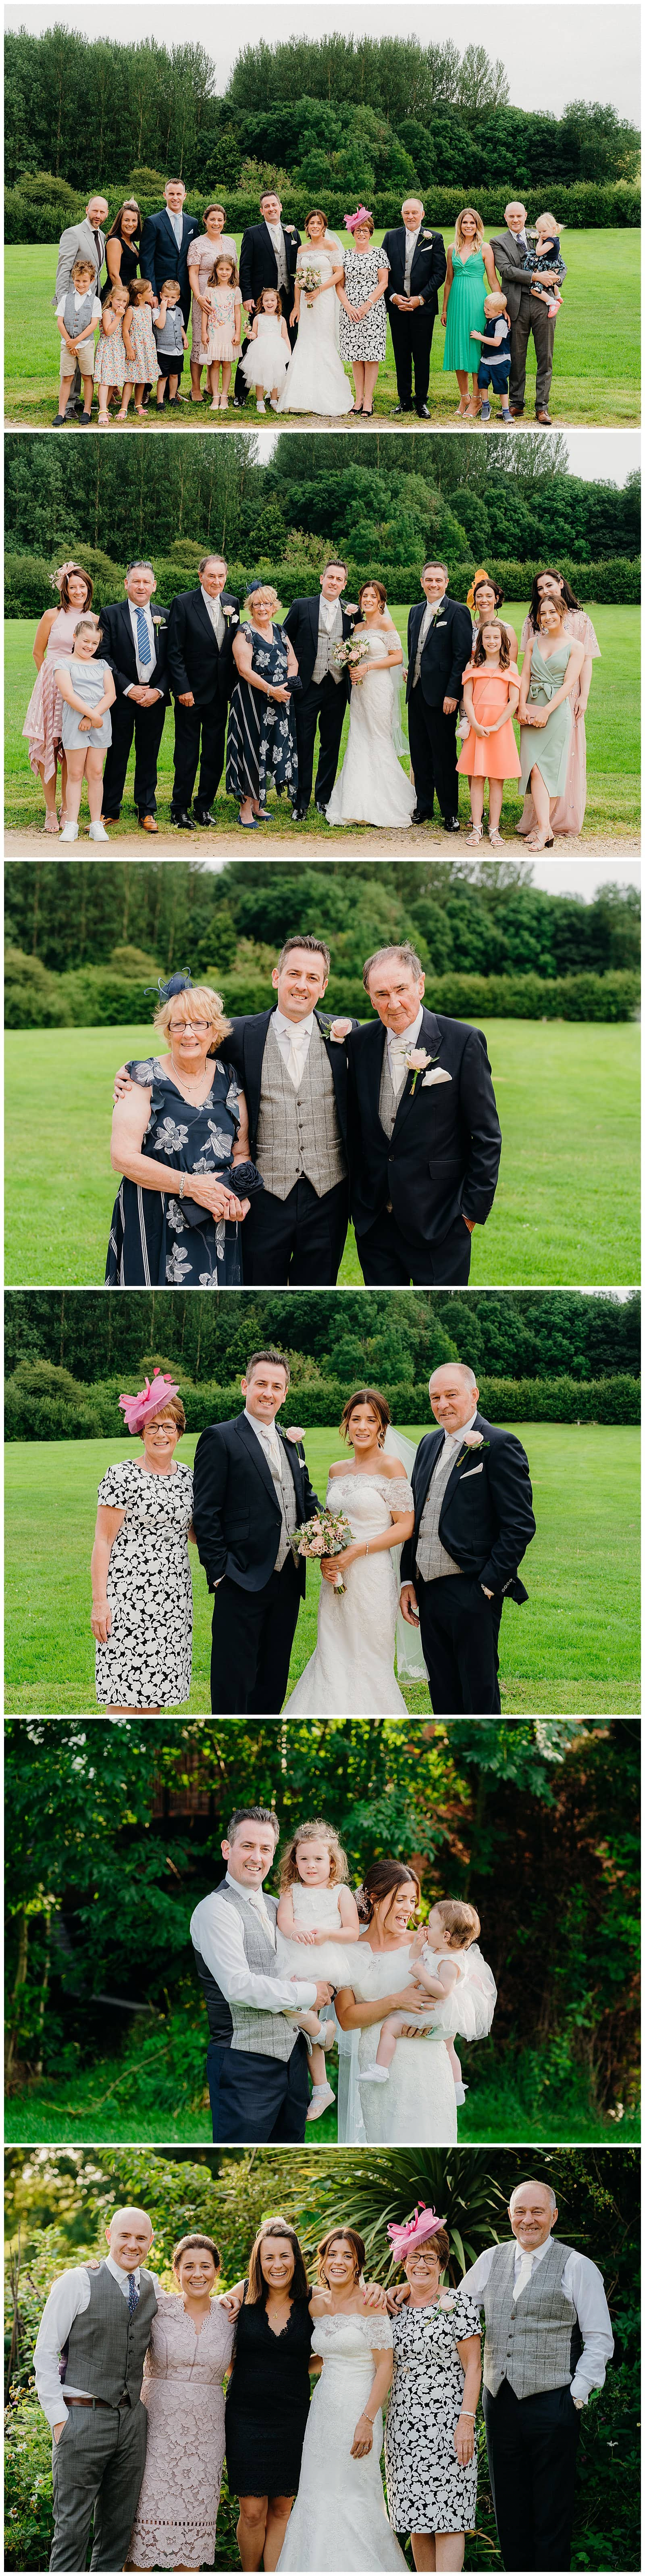 The Chequers Inn Woolsthorpe Wedding Photography - wedding guests chat during the wedding breakfast